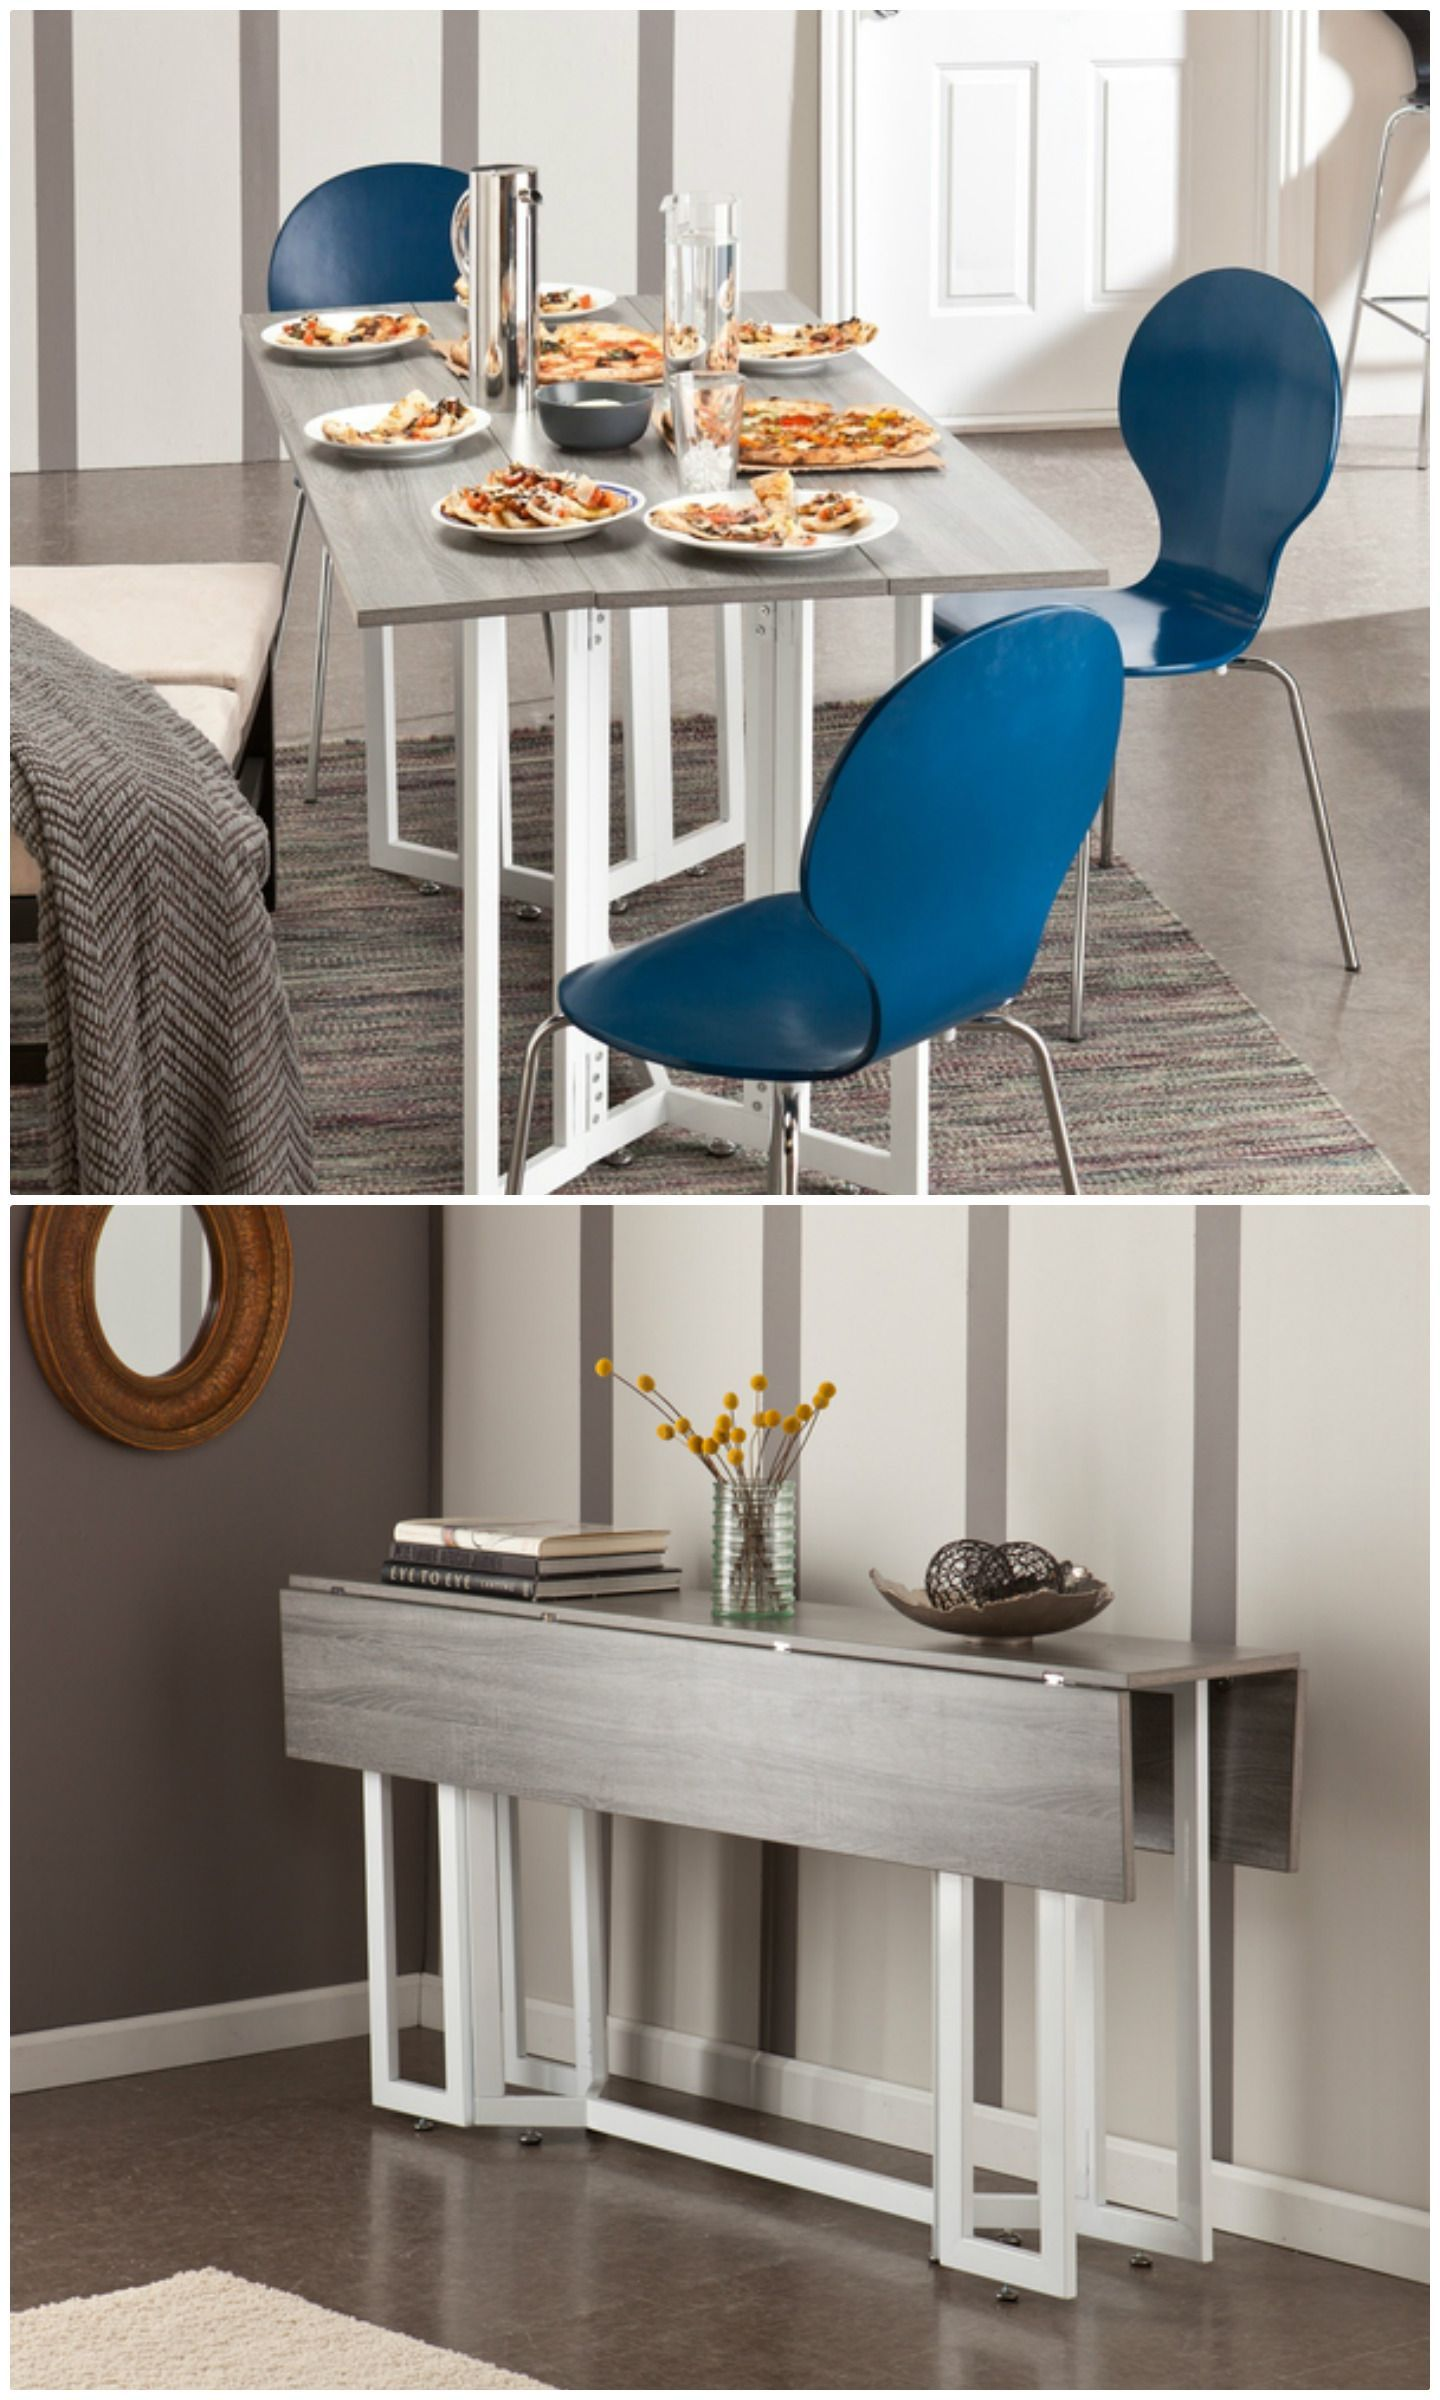 Twenty Dining Tables That Work Great In Small Spaces Dining Table Small Space Space Saving Dining Table Dining